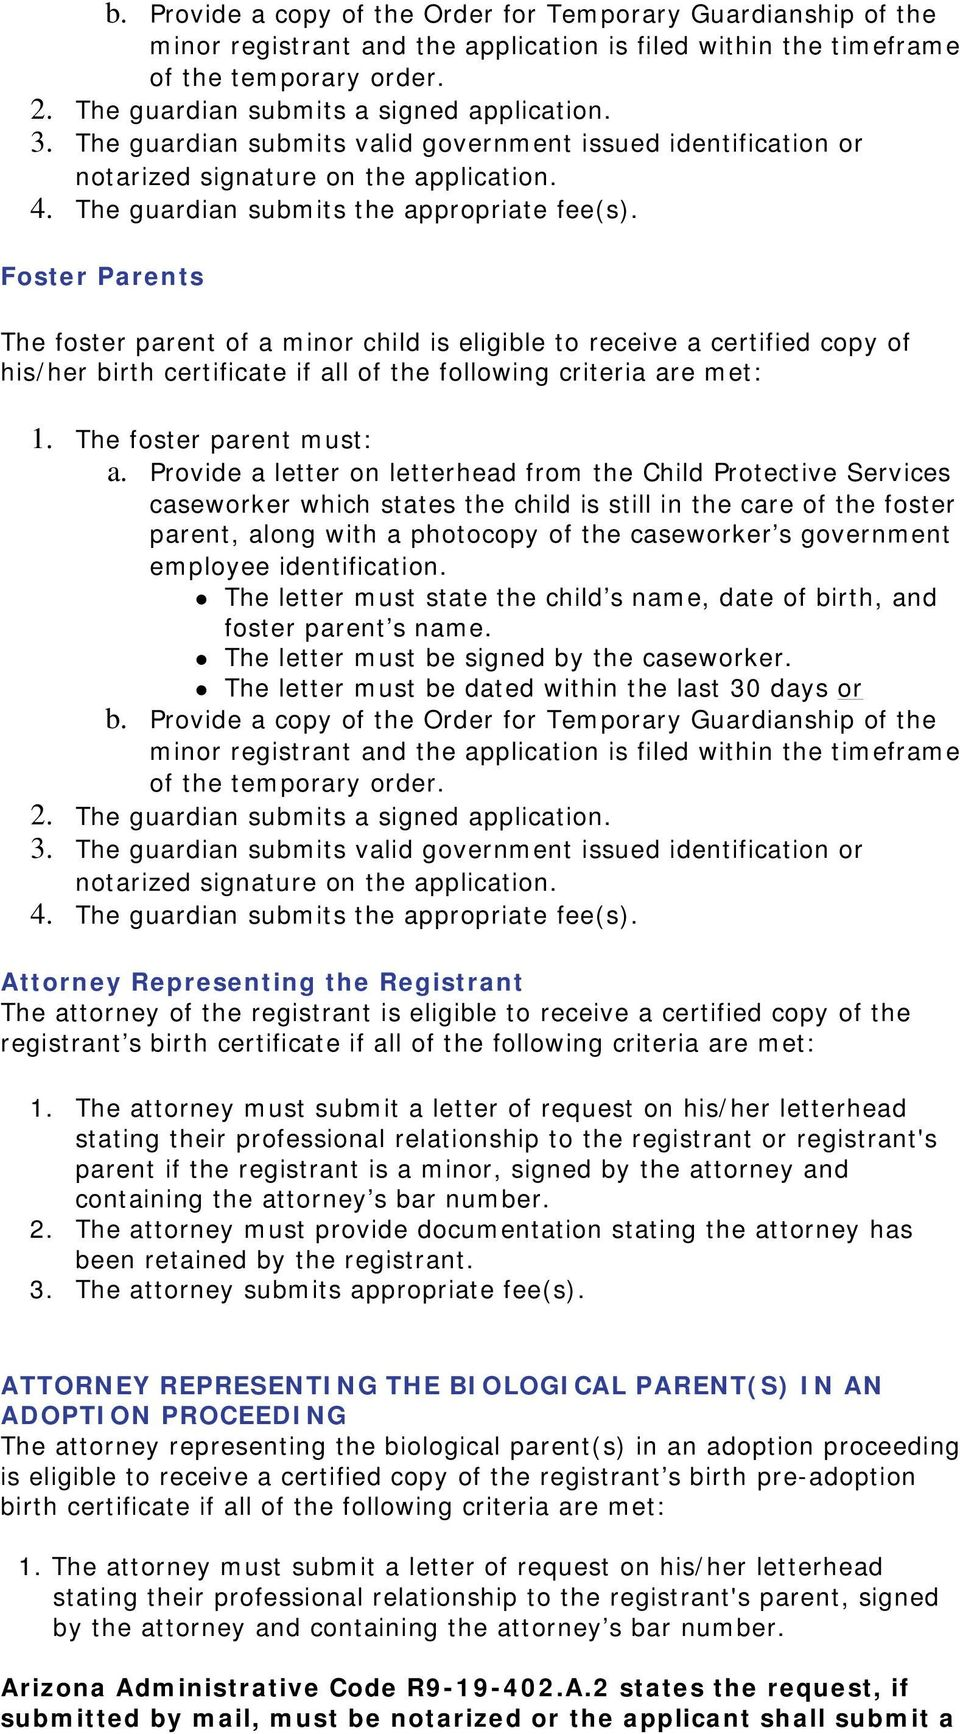 Foster Parents The foster parent of a minor child is eligible to receive a certified copy of his/her birth certificate if all of the following criteria are met: 1. The foster parent must: a.